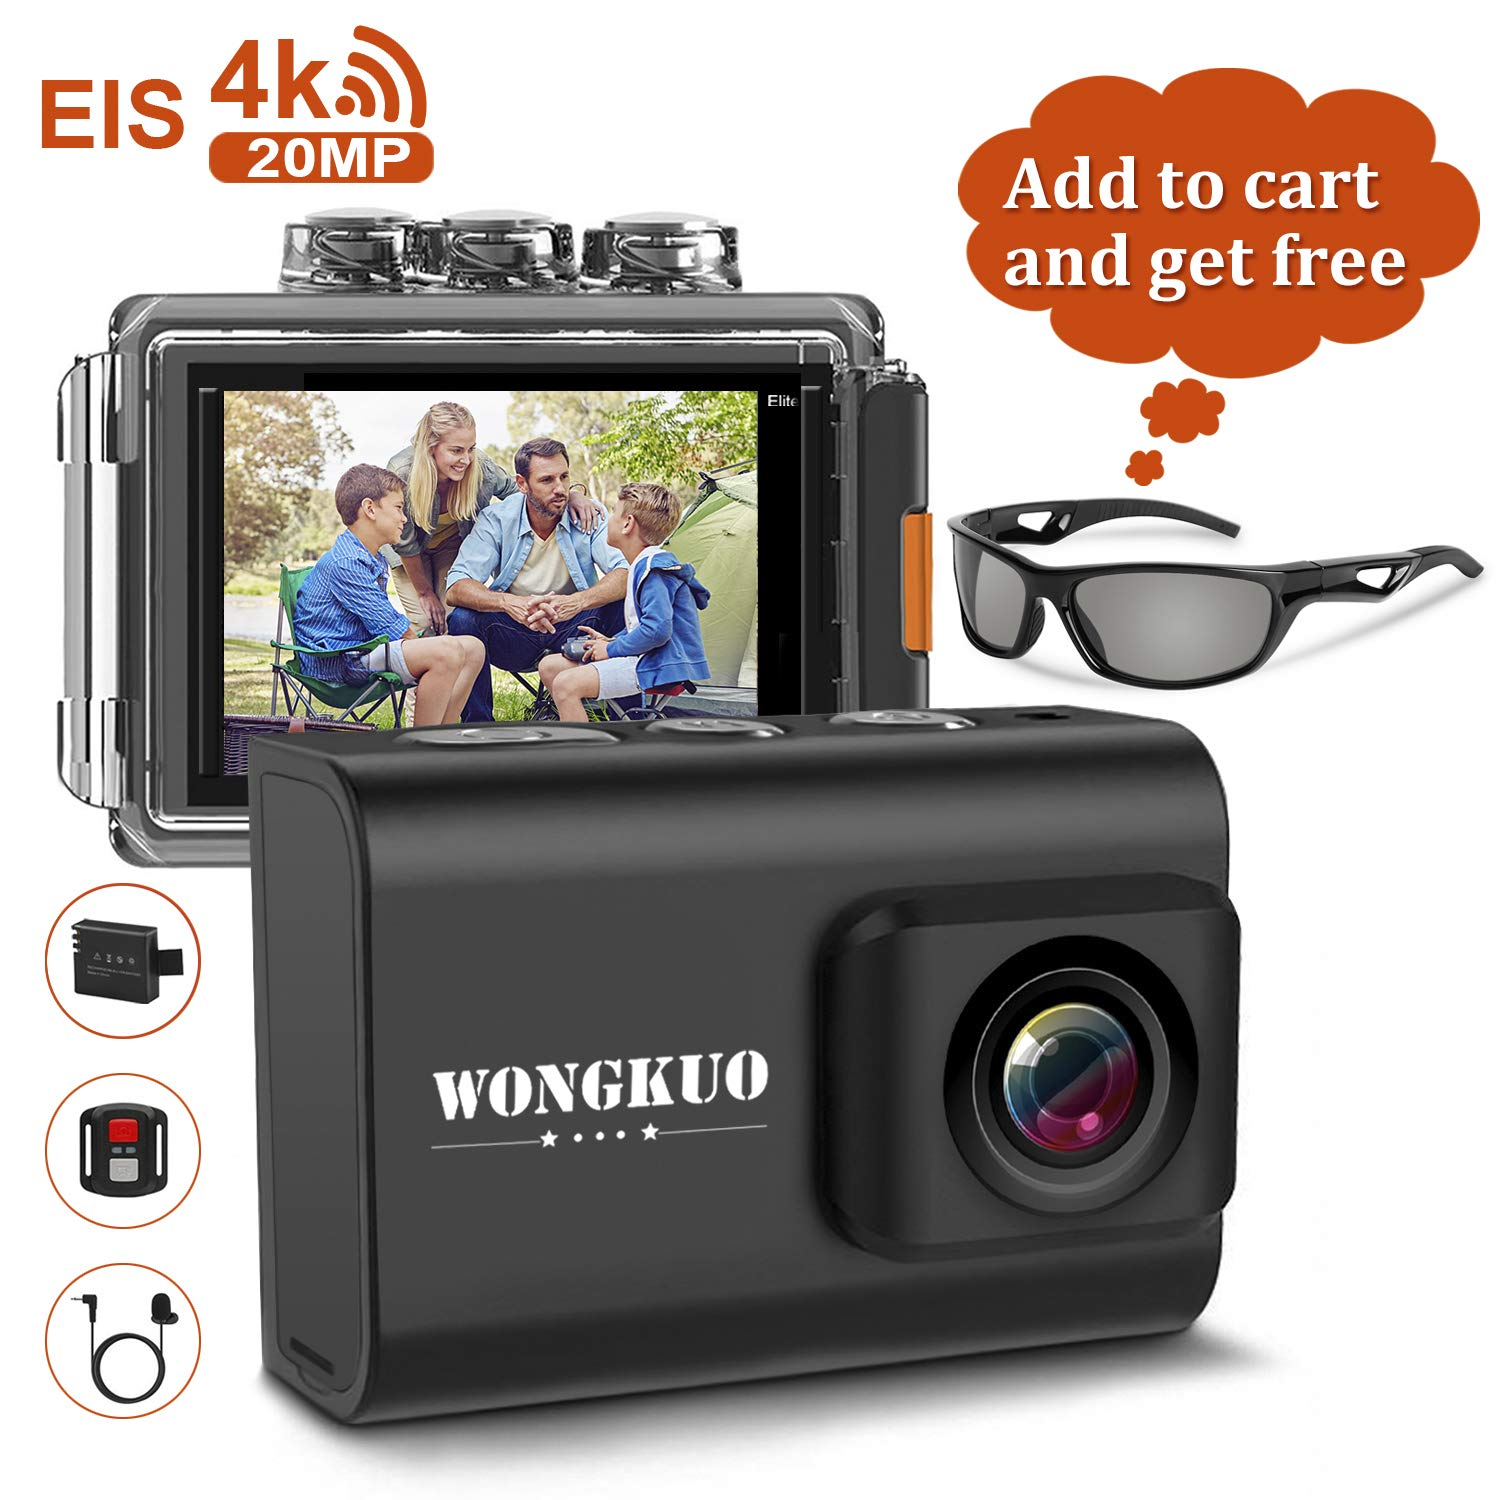 WONGKUO Upgraded Action Camera 4K 20MP Ultra HD WiFi Sport Camera with EIS 30m Waterproof Camera 170°Wide Angle Camcorder 2'' LCD Screen Support External Microphone Remote Control with Accessories Kit by WONGKUO